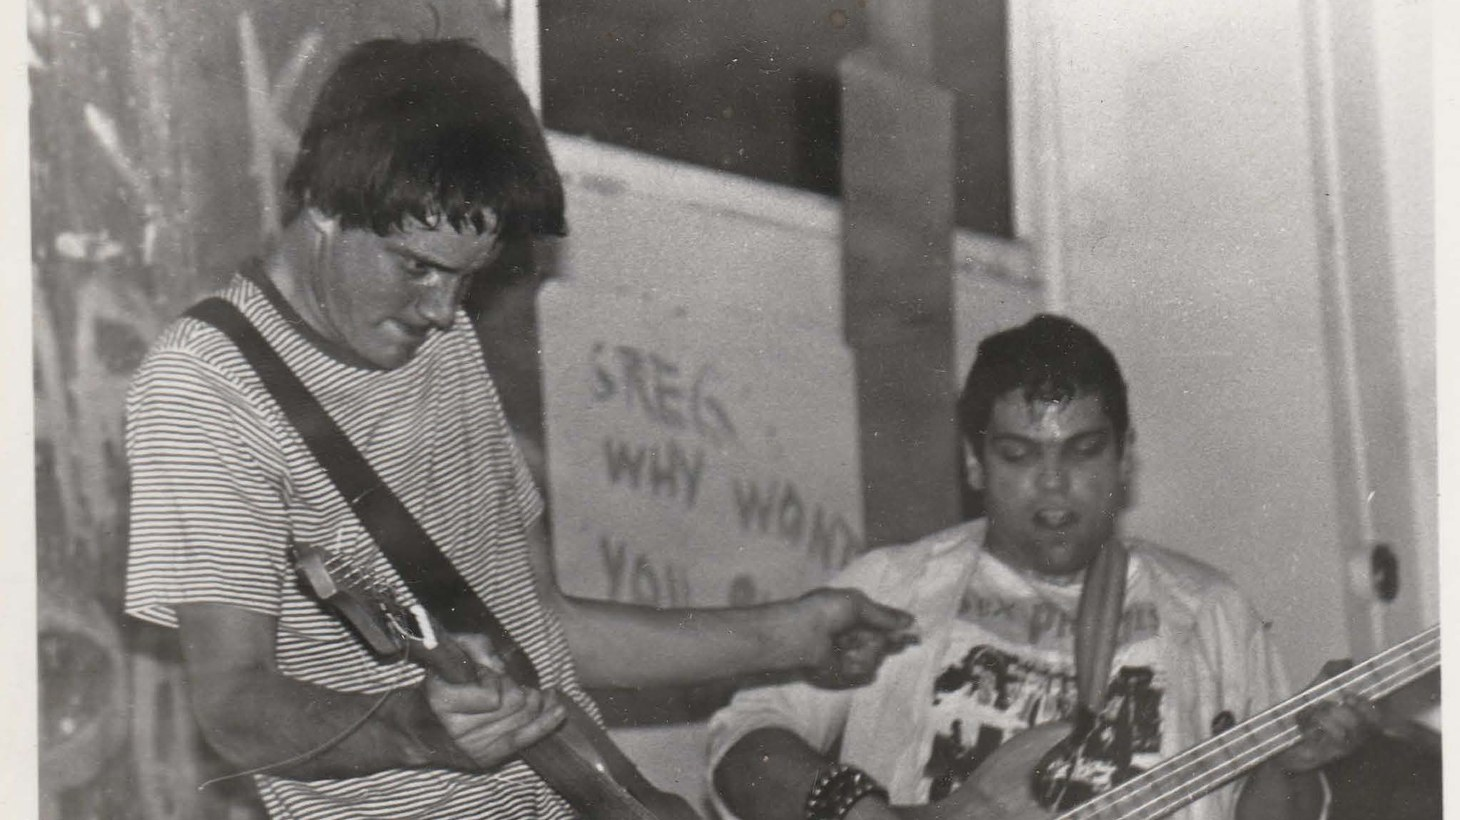 Rob Rosenthal performing with the Freeze